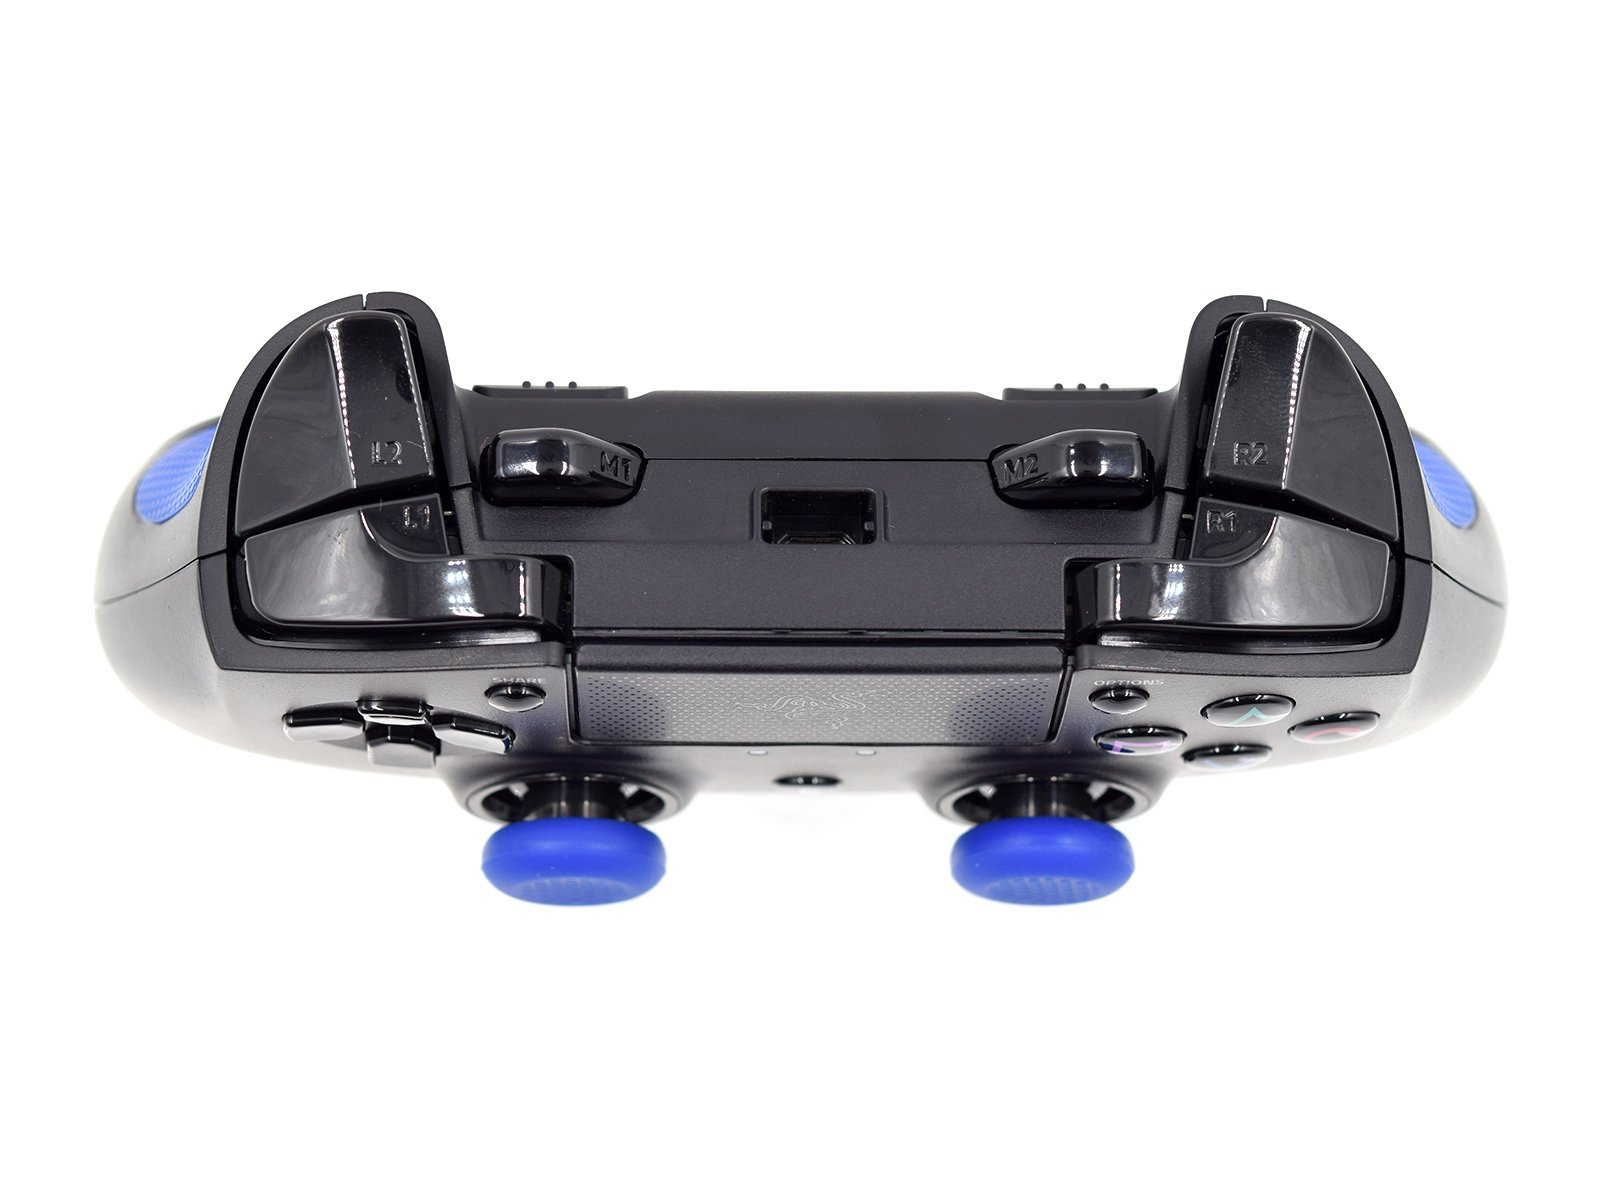 Razer Raiju PS4 Pro Controller - Triggers and Bumpers View Front Side Down